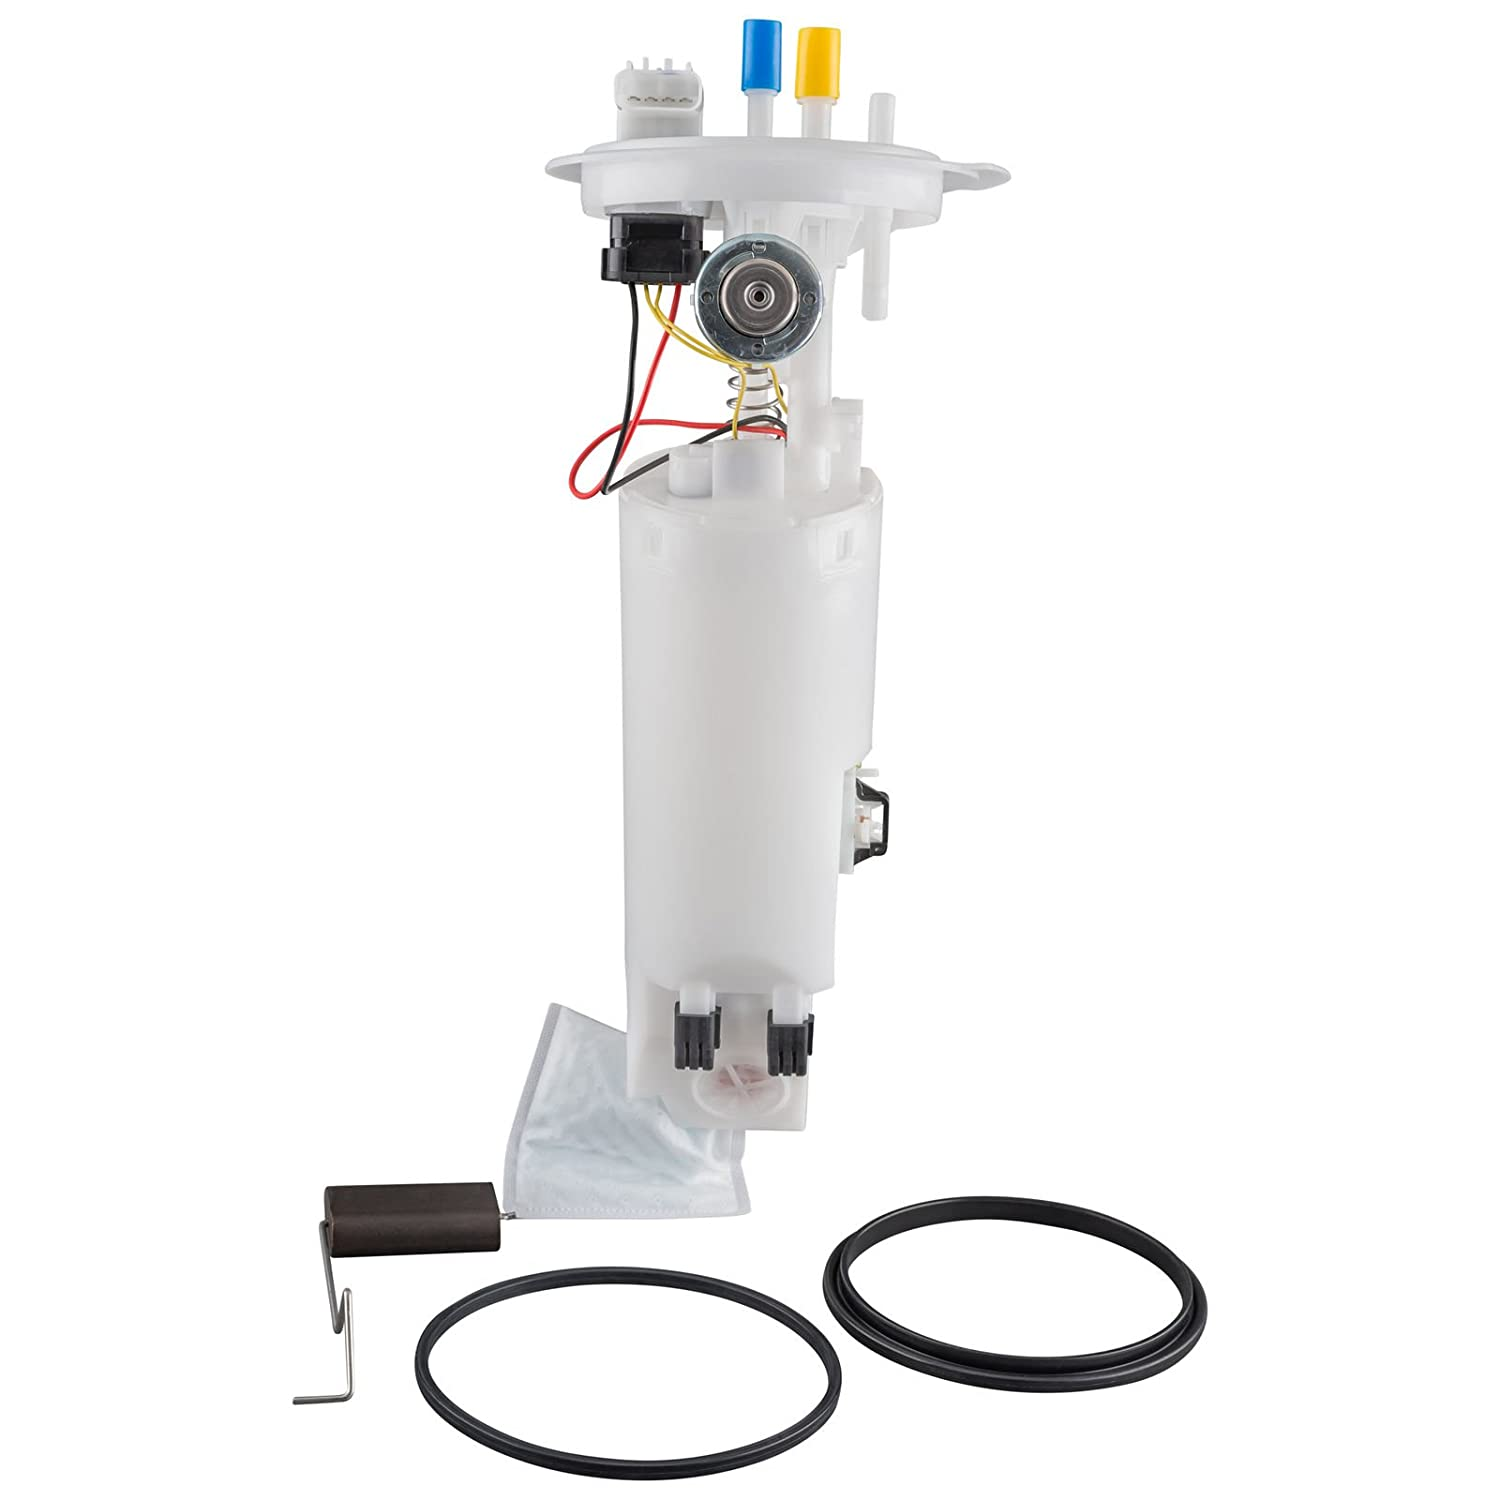 Fuel Pump for 2001-2003 Town & Country Caravan Voyager Grand fits E7144M Parts Galaxy 6254594